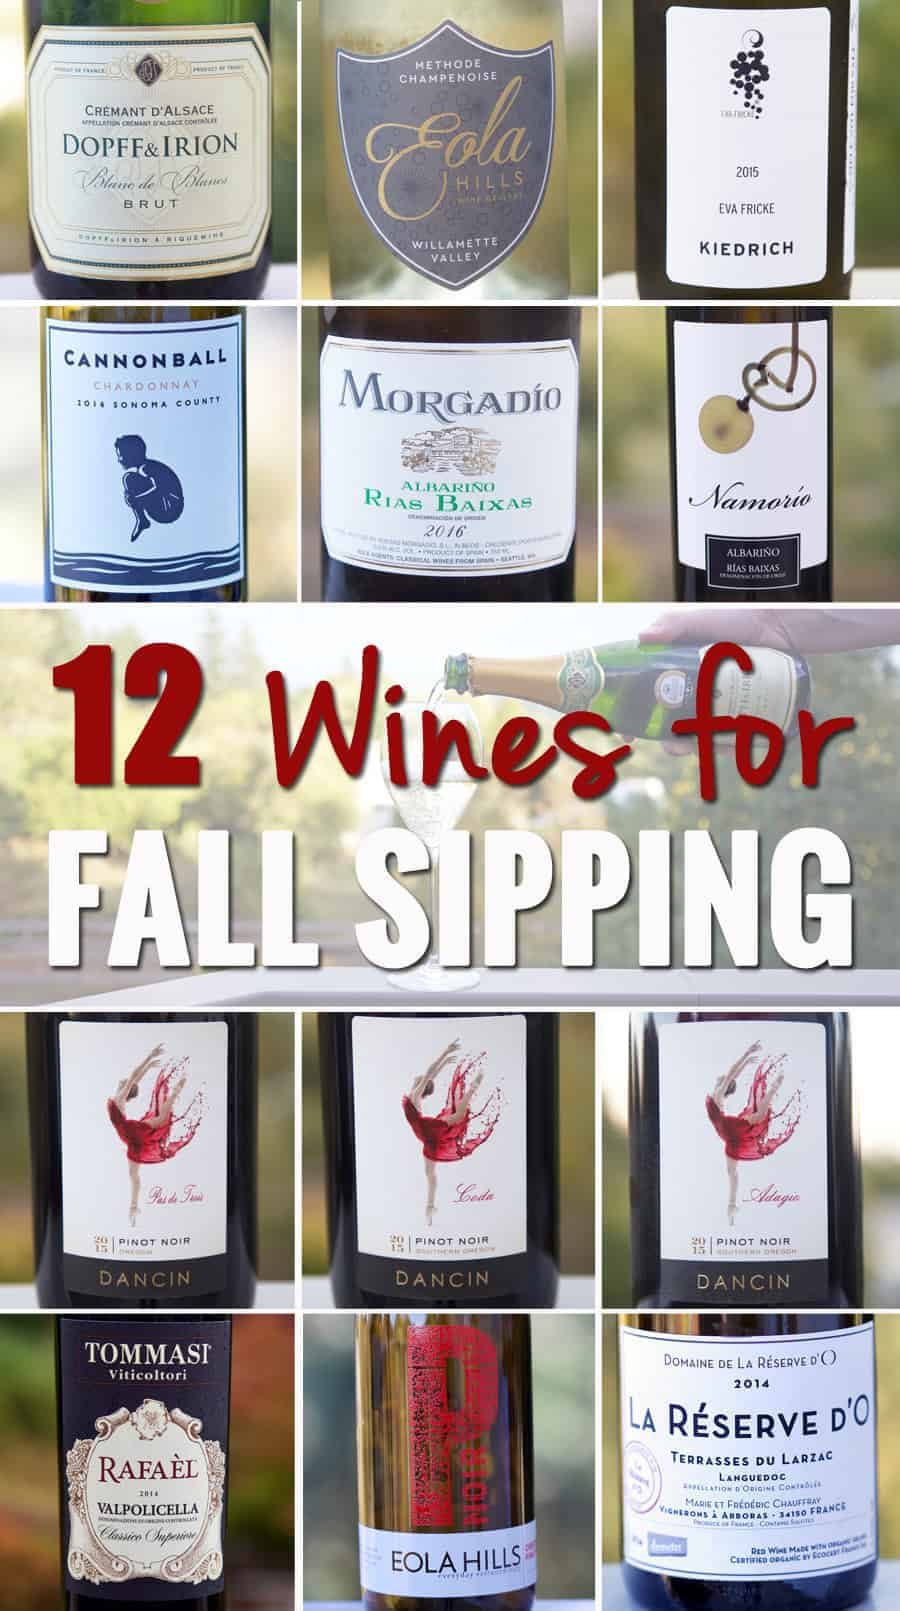 12 Wines for Fall Sipping, wine recommendations for this gorgeous fall season.